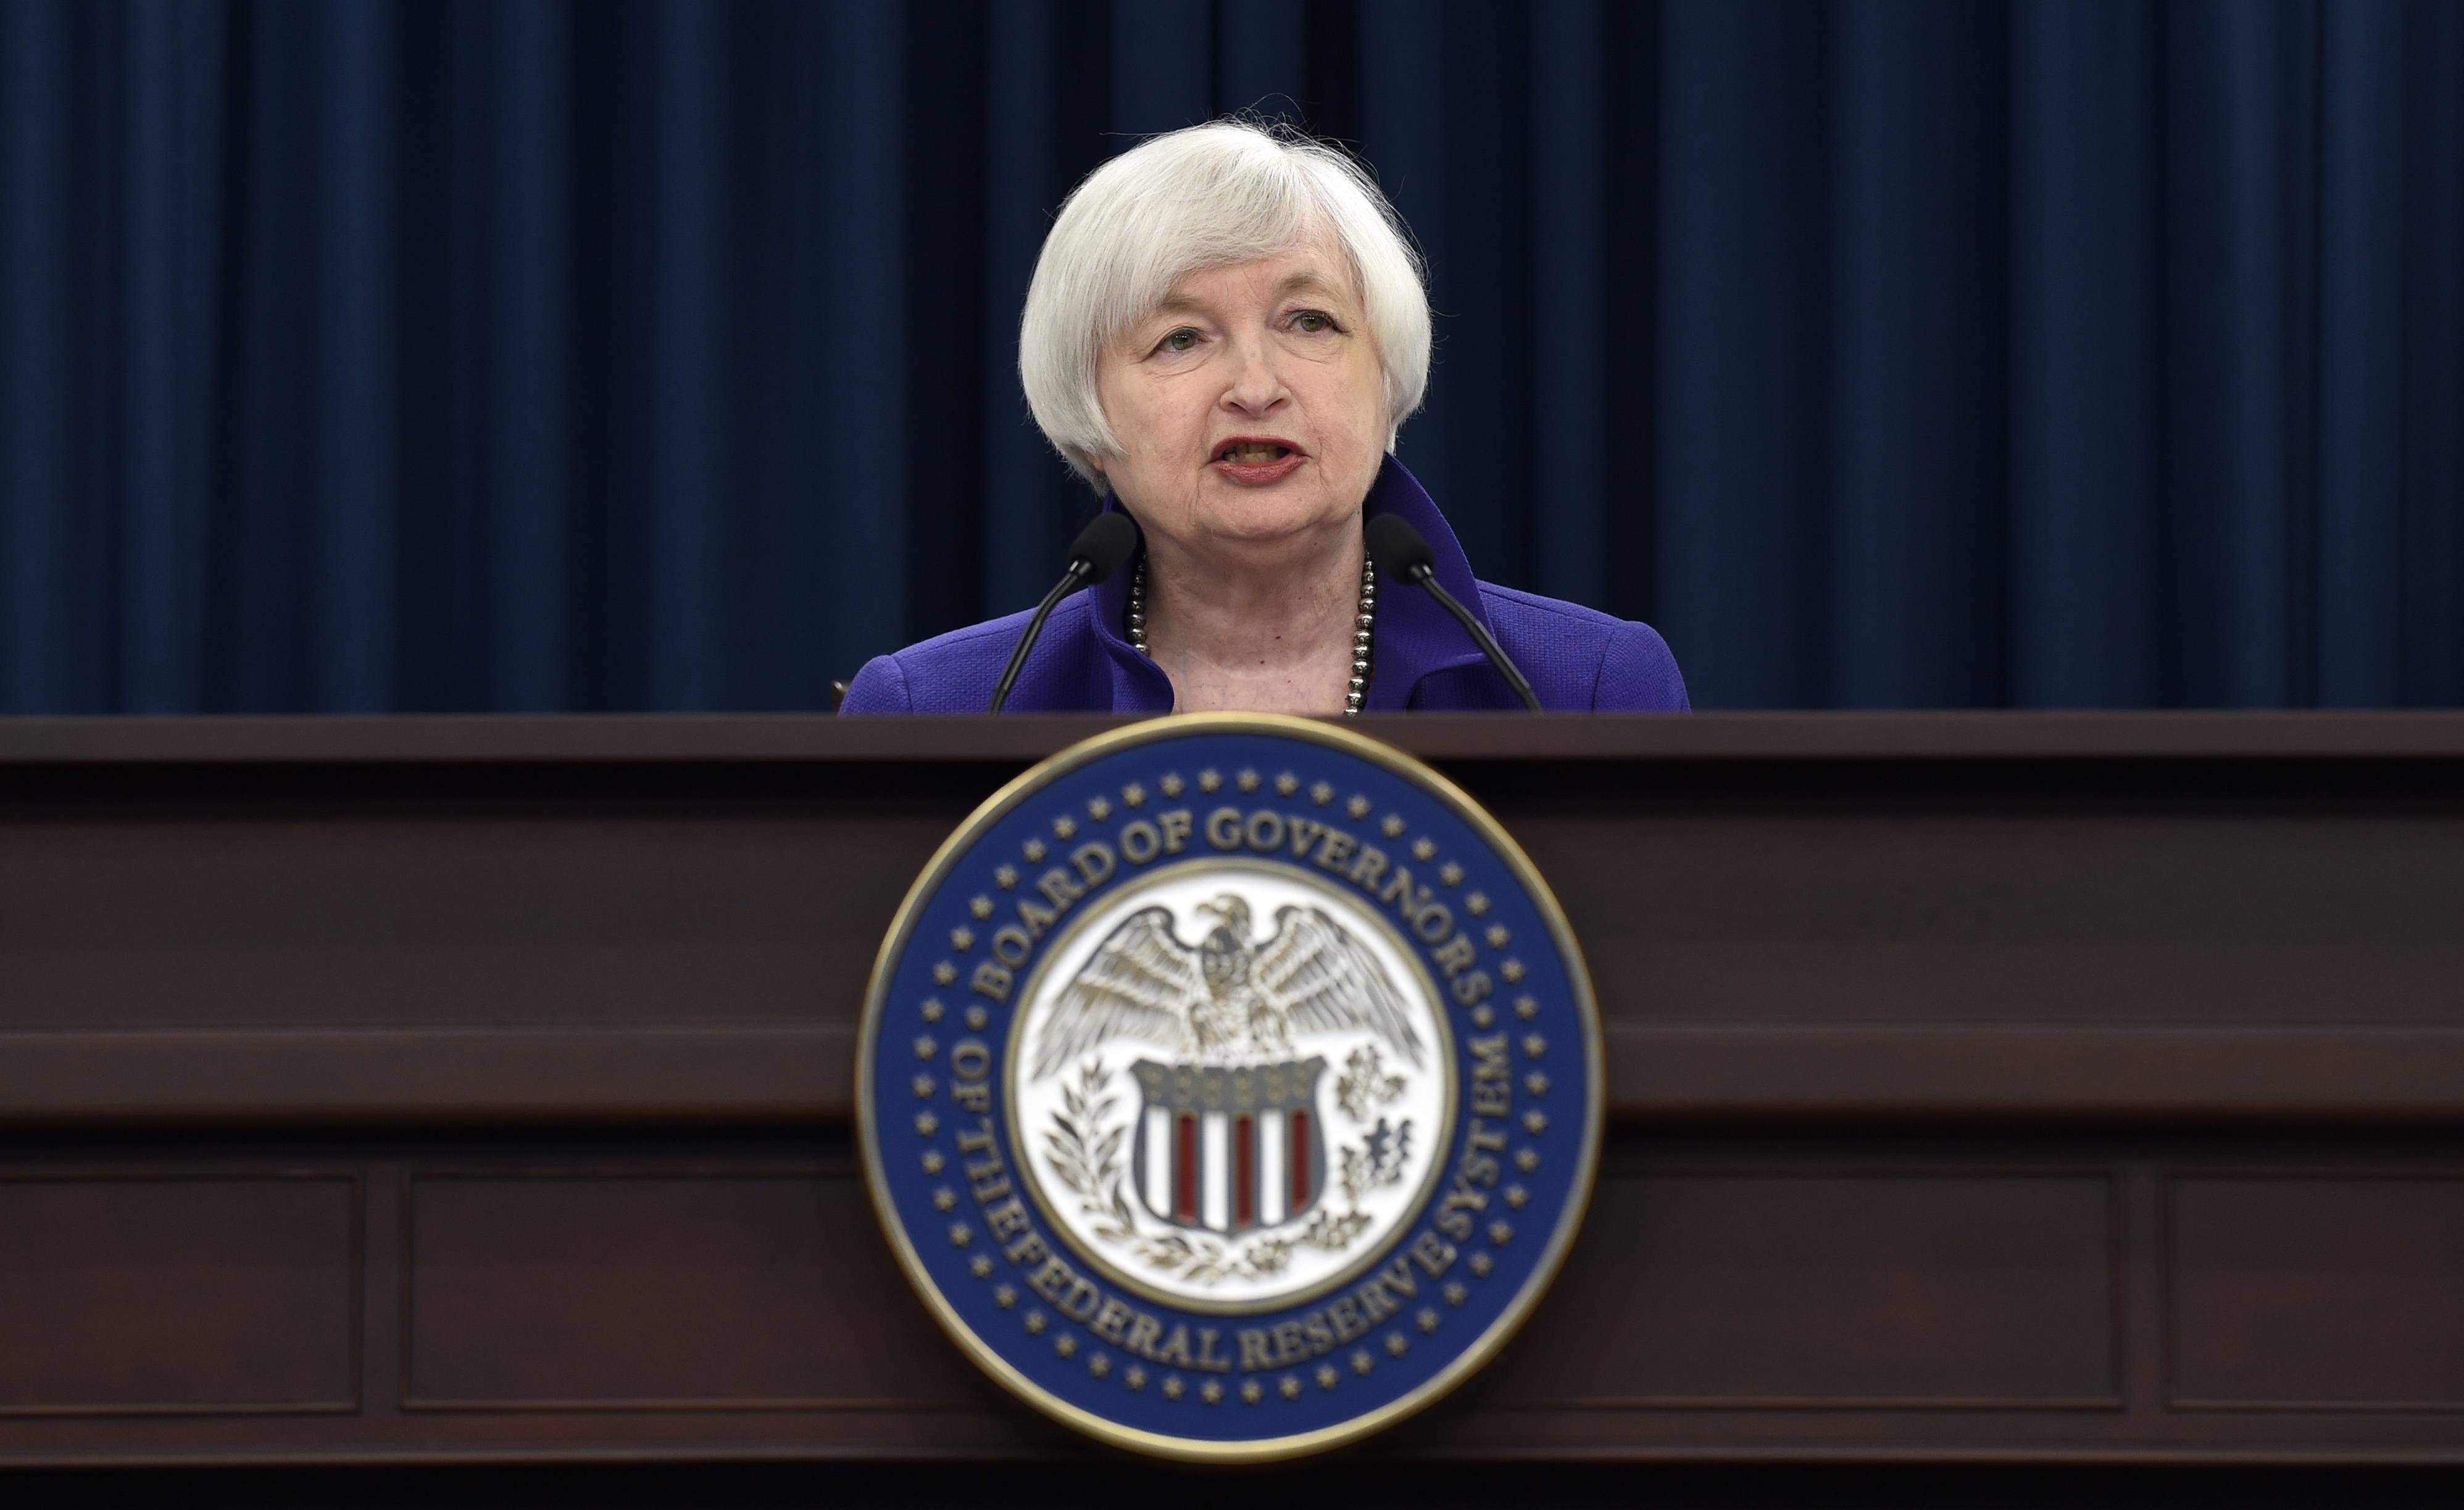 Federal Reserve Chair Janet Yellen speaks Wednesday during a news conference in Washington following an announcement that the Federal Reserve raised its key interest rate by quarter-point, heralding higher lending rates in an economy much sturdier than the one the Fed helped rescue in 2008.